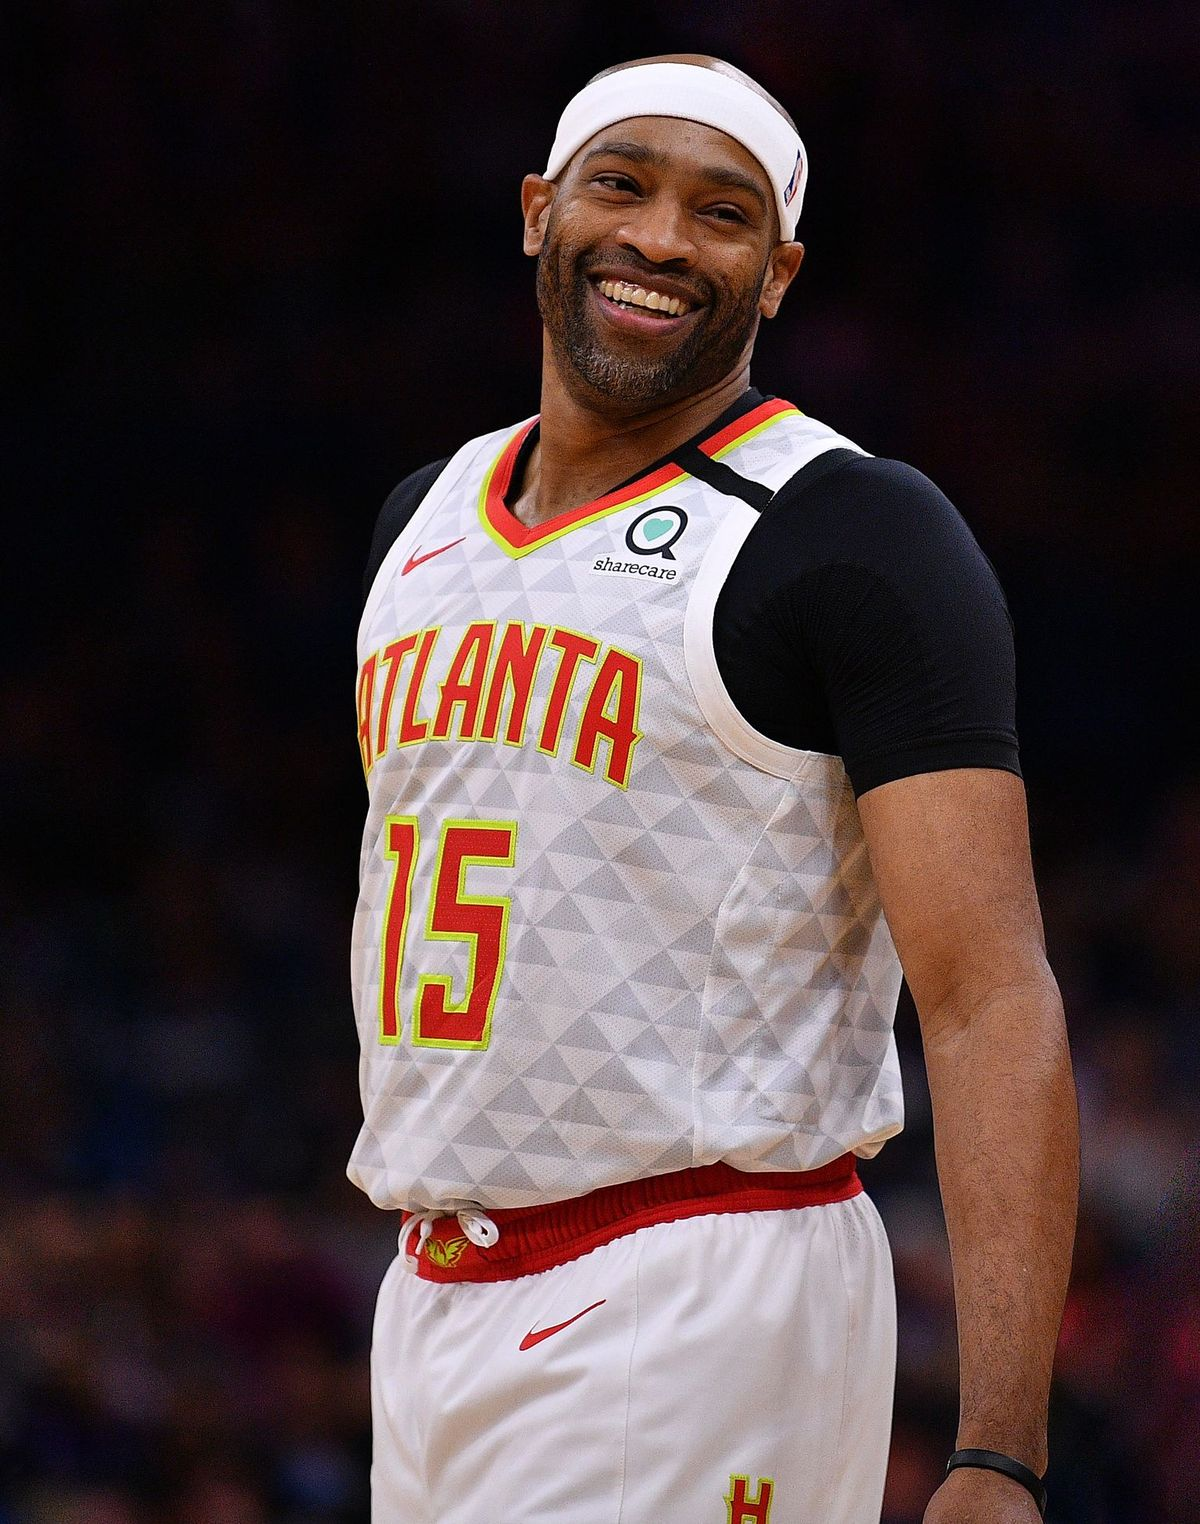 Vince Carter playing against Orlando Magic in February 2020 in Orlando, Florida | Source: Getty Images